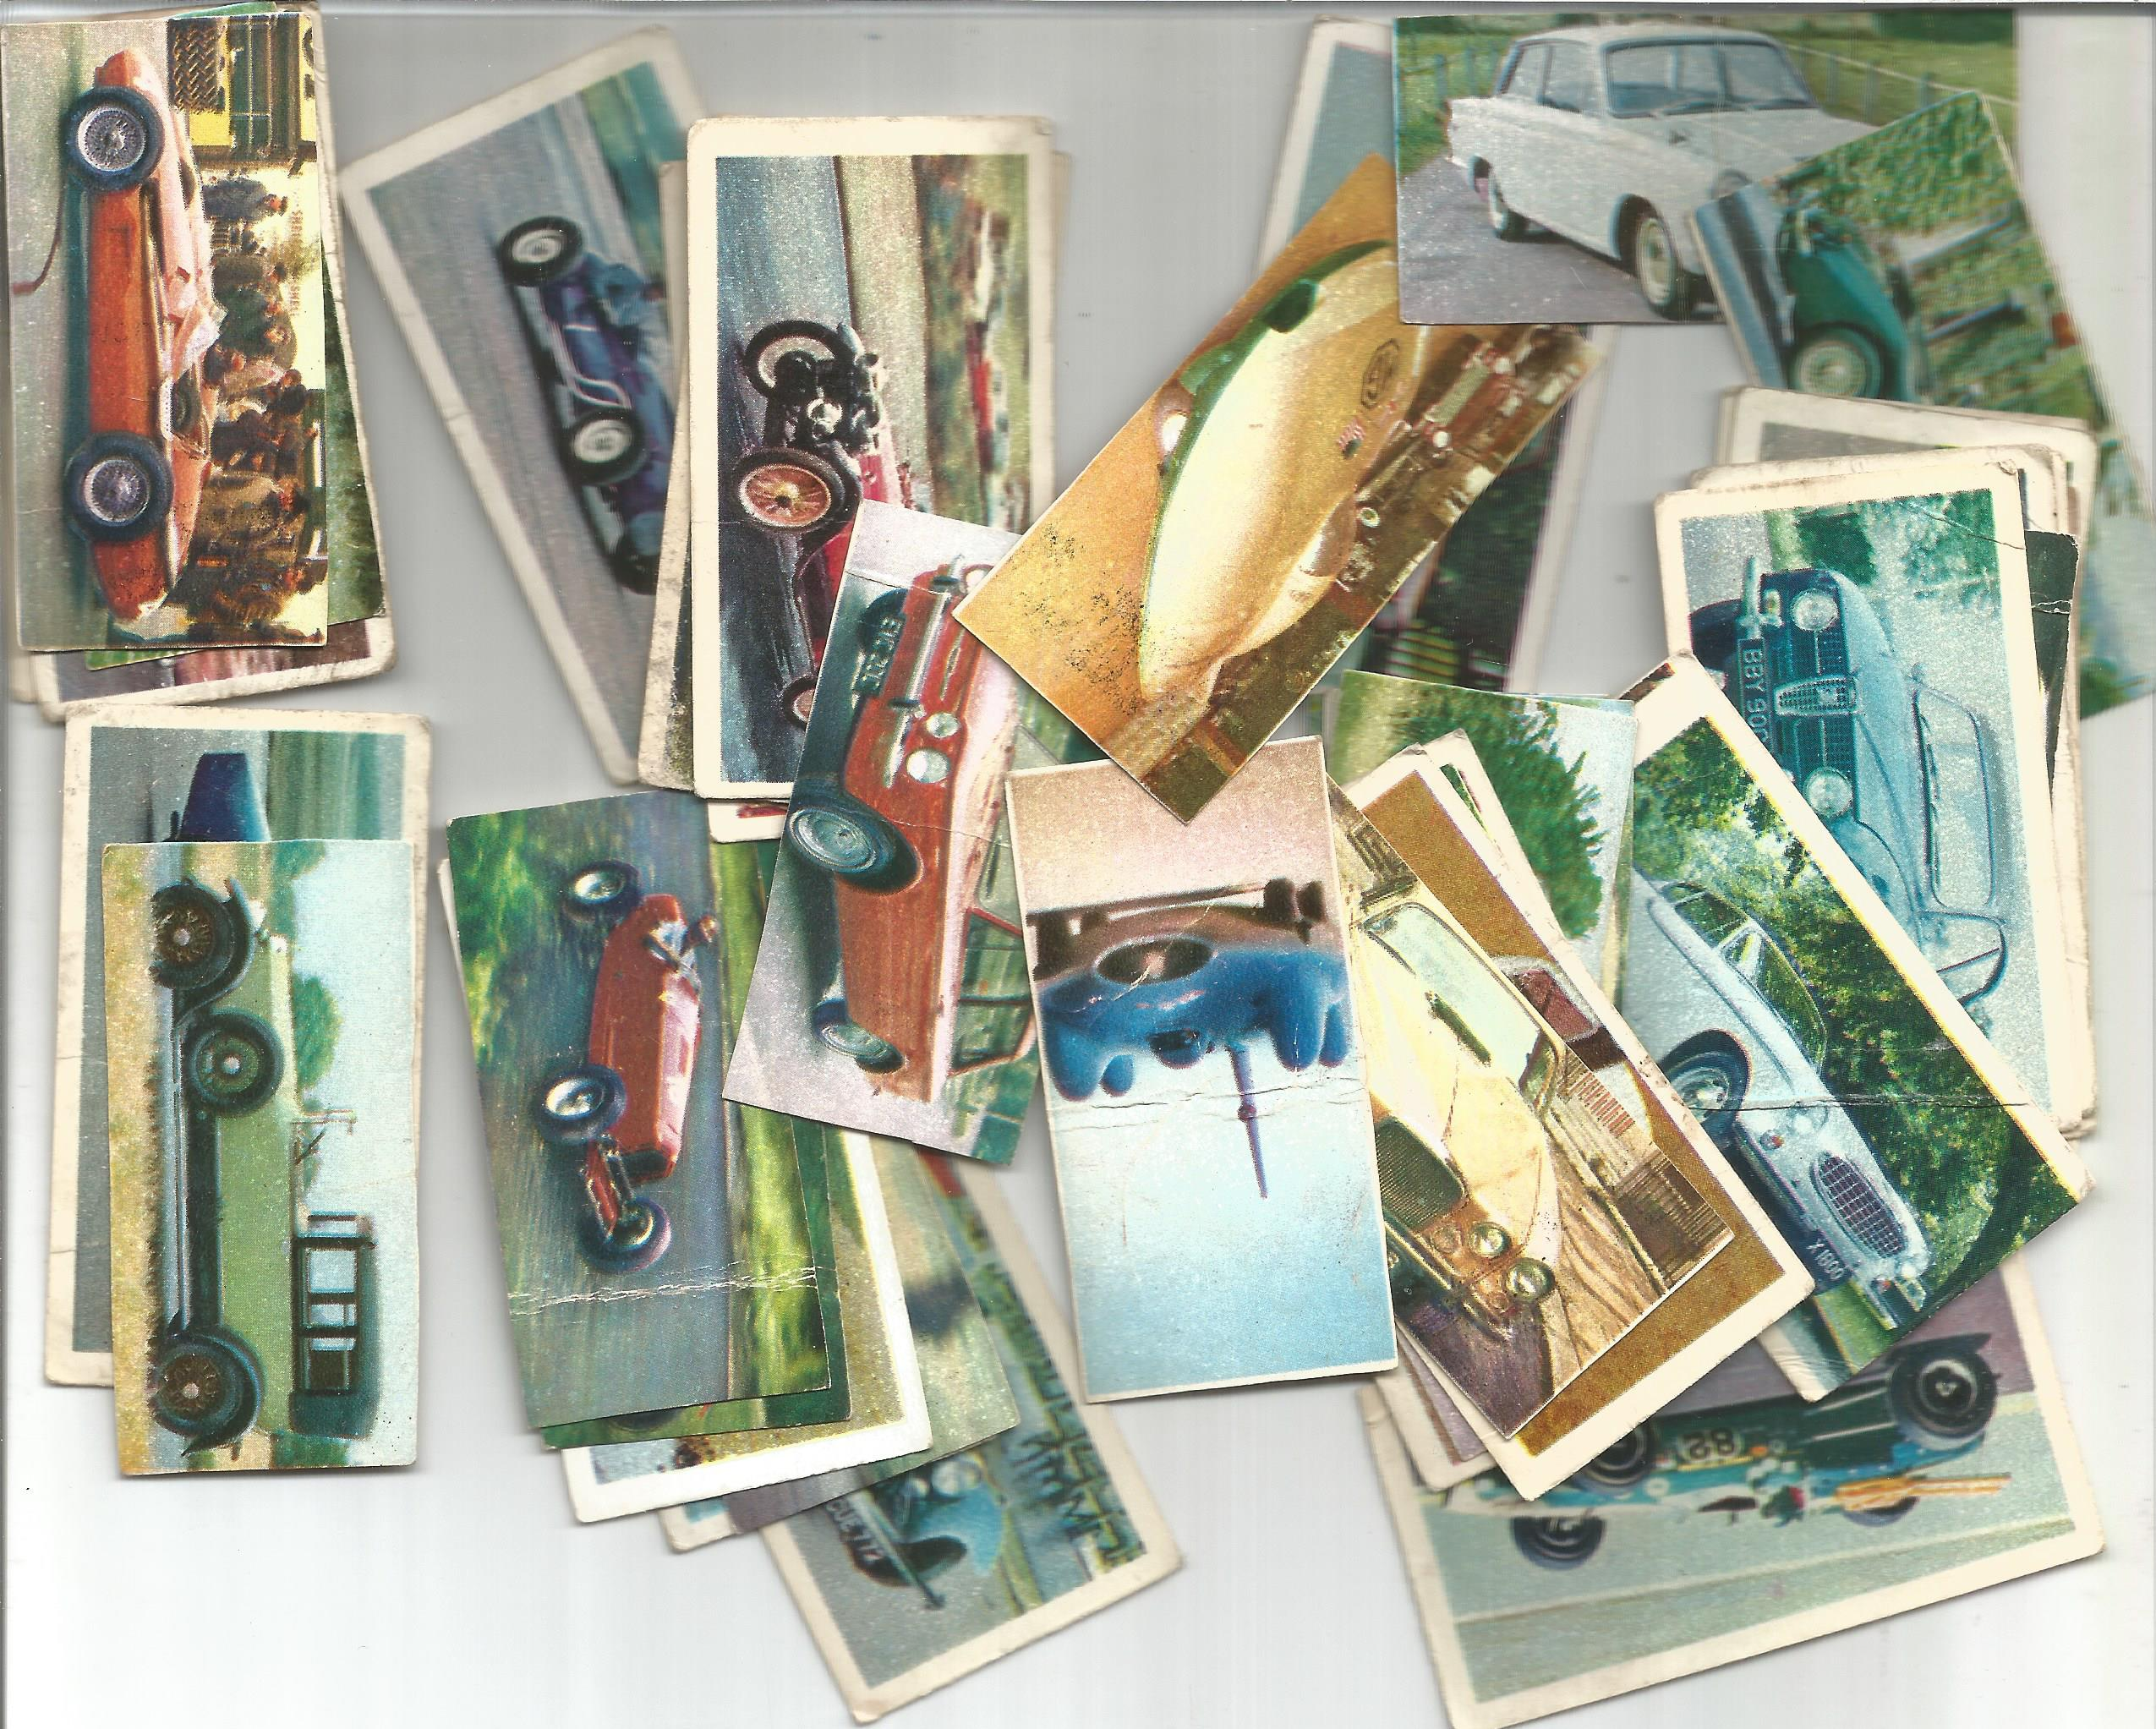 Cigarette card collection. Includes Lyons maid 1966 famous cars 38 cards, The molassme co 1964 - dog